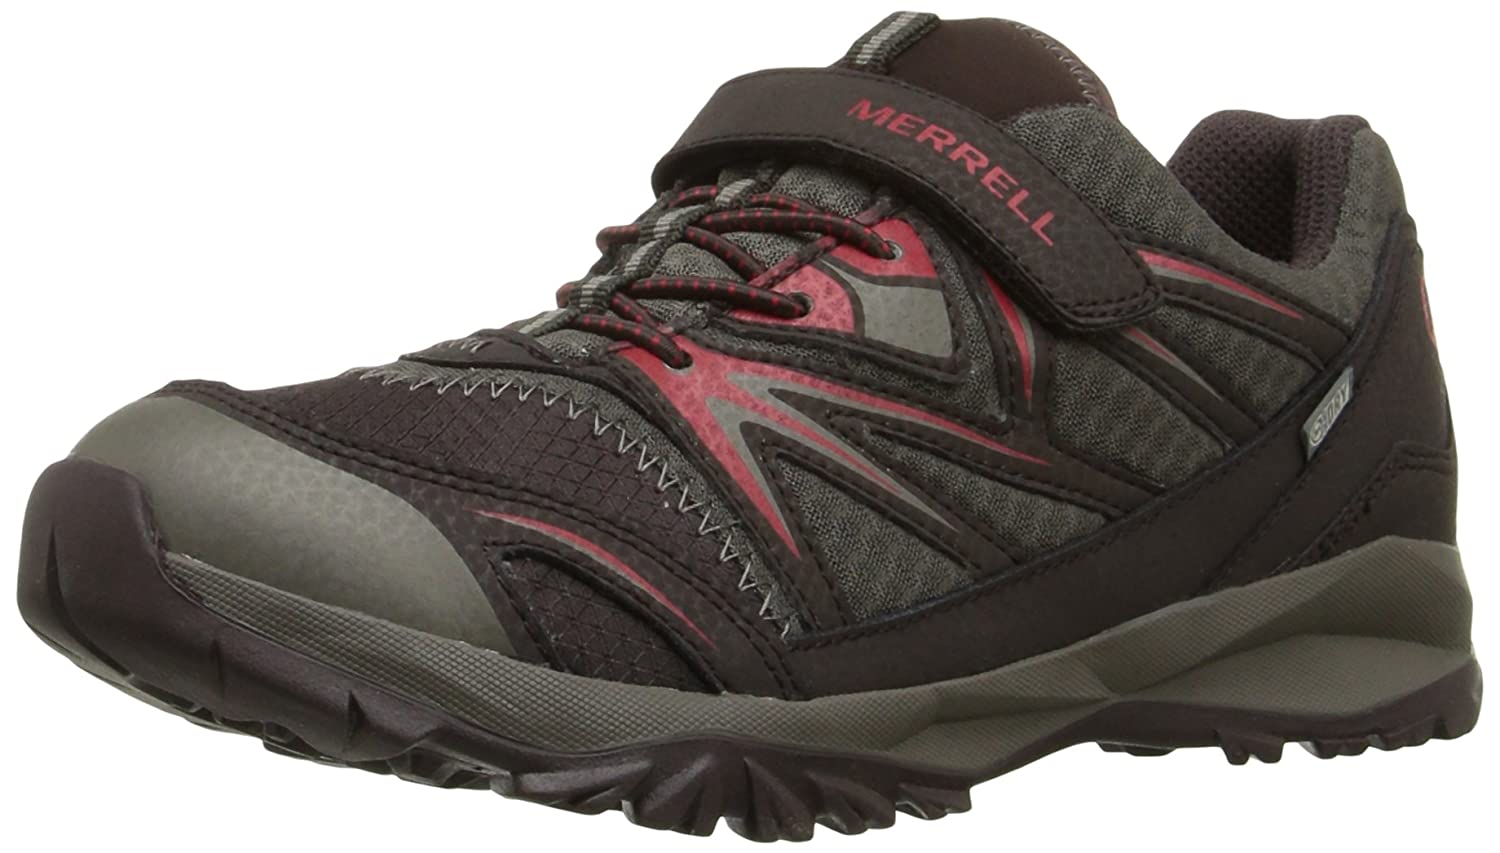 Merrell Capra Bolt Low A/C Waterproof Hiking Boot (Little Kid/Big Kid)